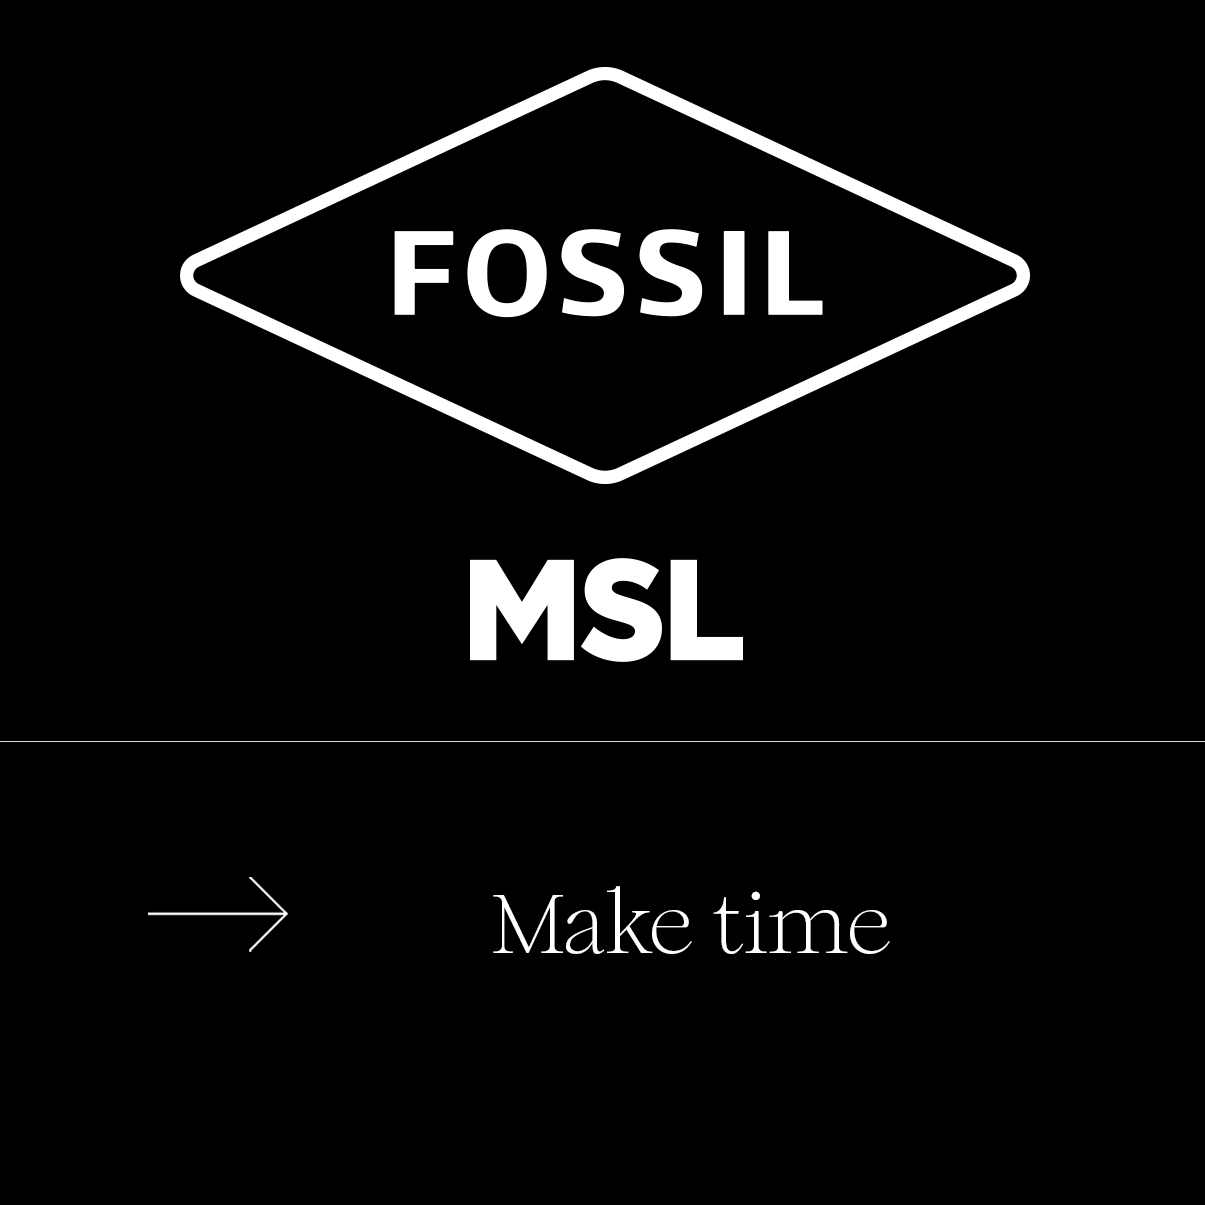 Fossil & MSL